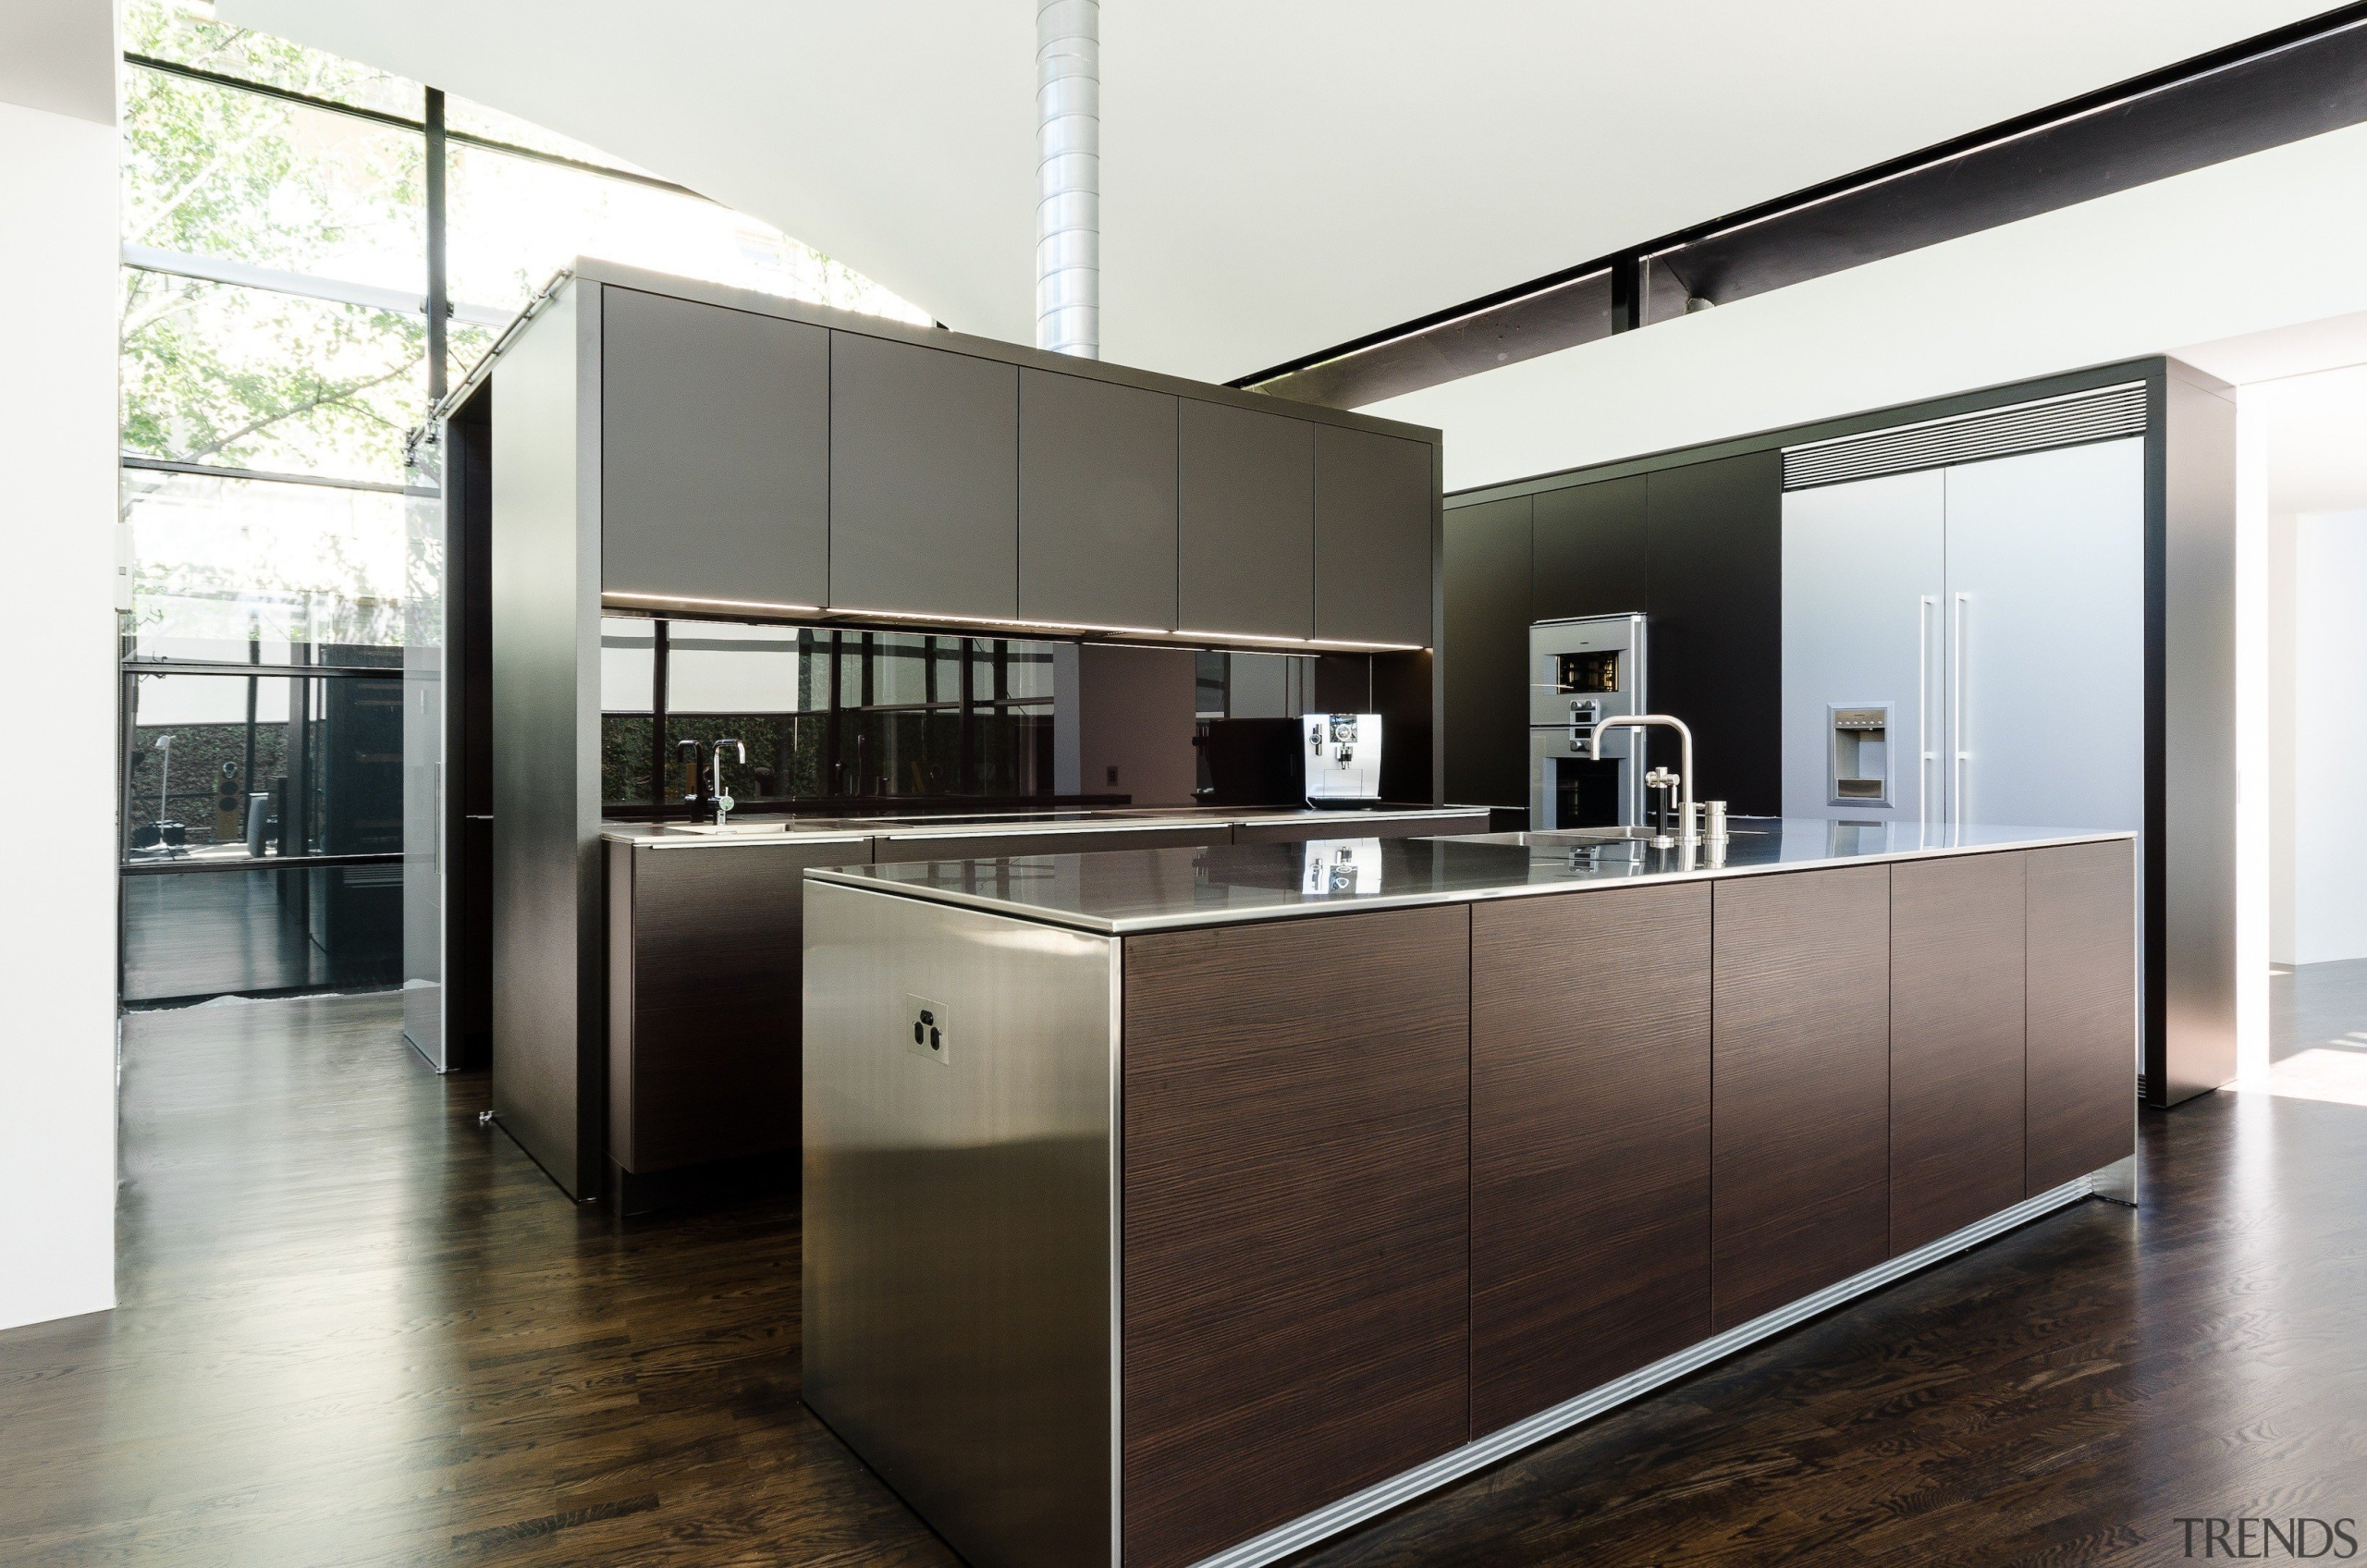 See the winner and all the finalists in cabinetry, countertop, furniture, interior design, kitchen, product design, white, black